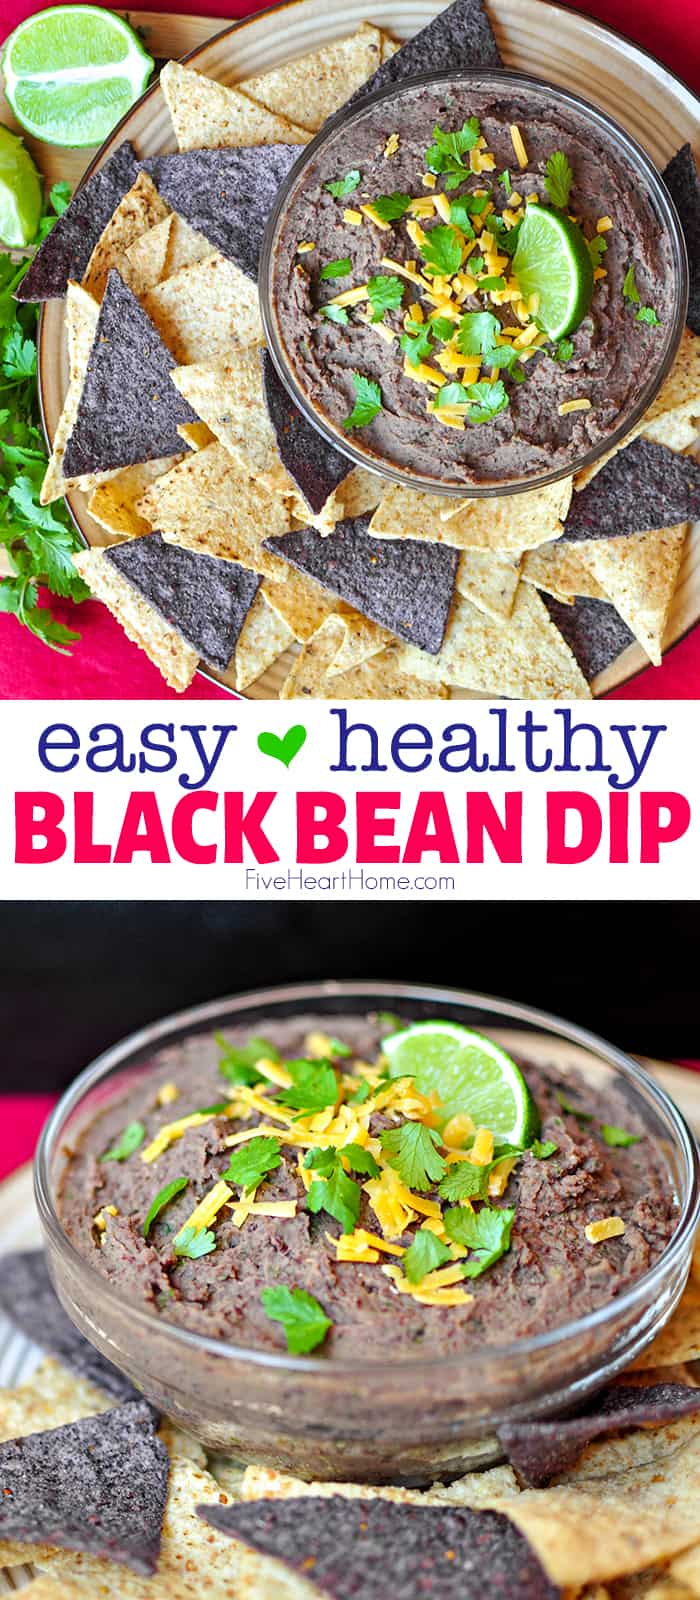 Black Bean Dip ~ flavored with fresh garlic, cilantro, jalapeño, lime juice, and cumin, this easy, healthy, zesty dip is equally delicious scooped up with tortilla chips or raw veggies! | FiveHeartHome.com via @fivehearthome